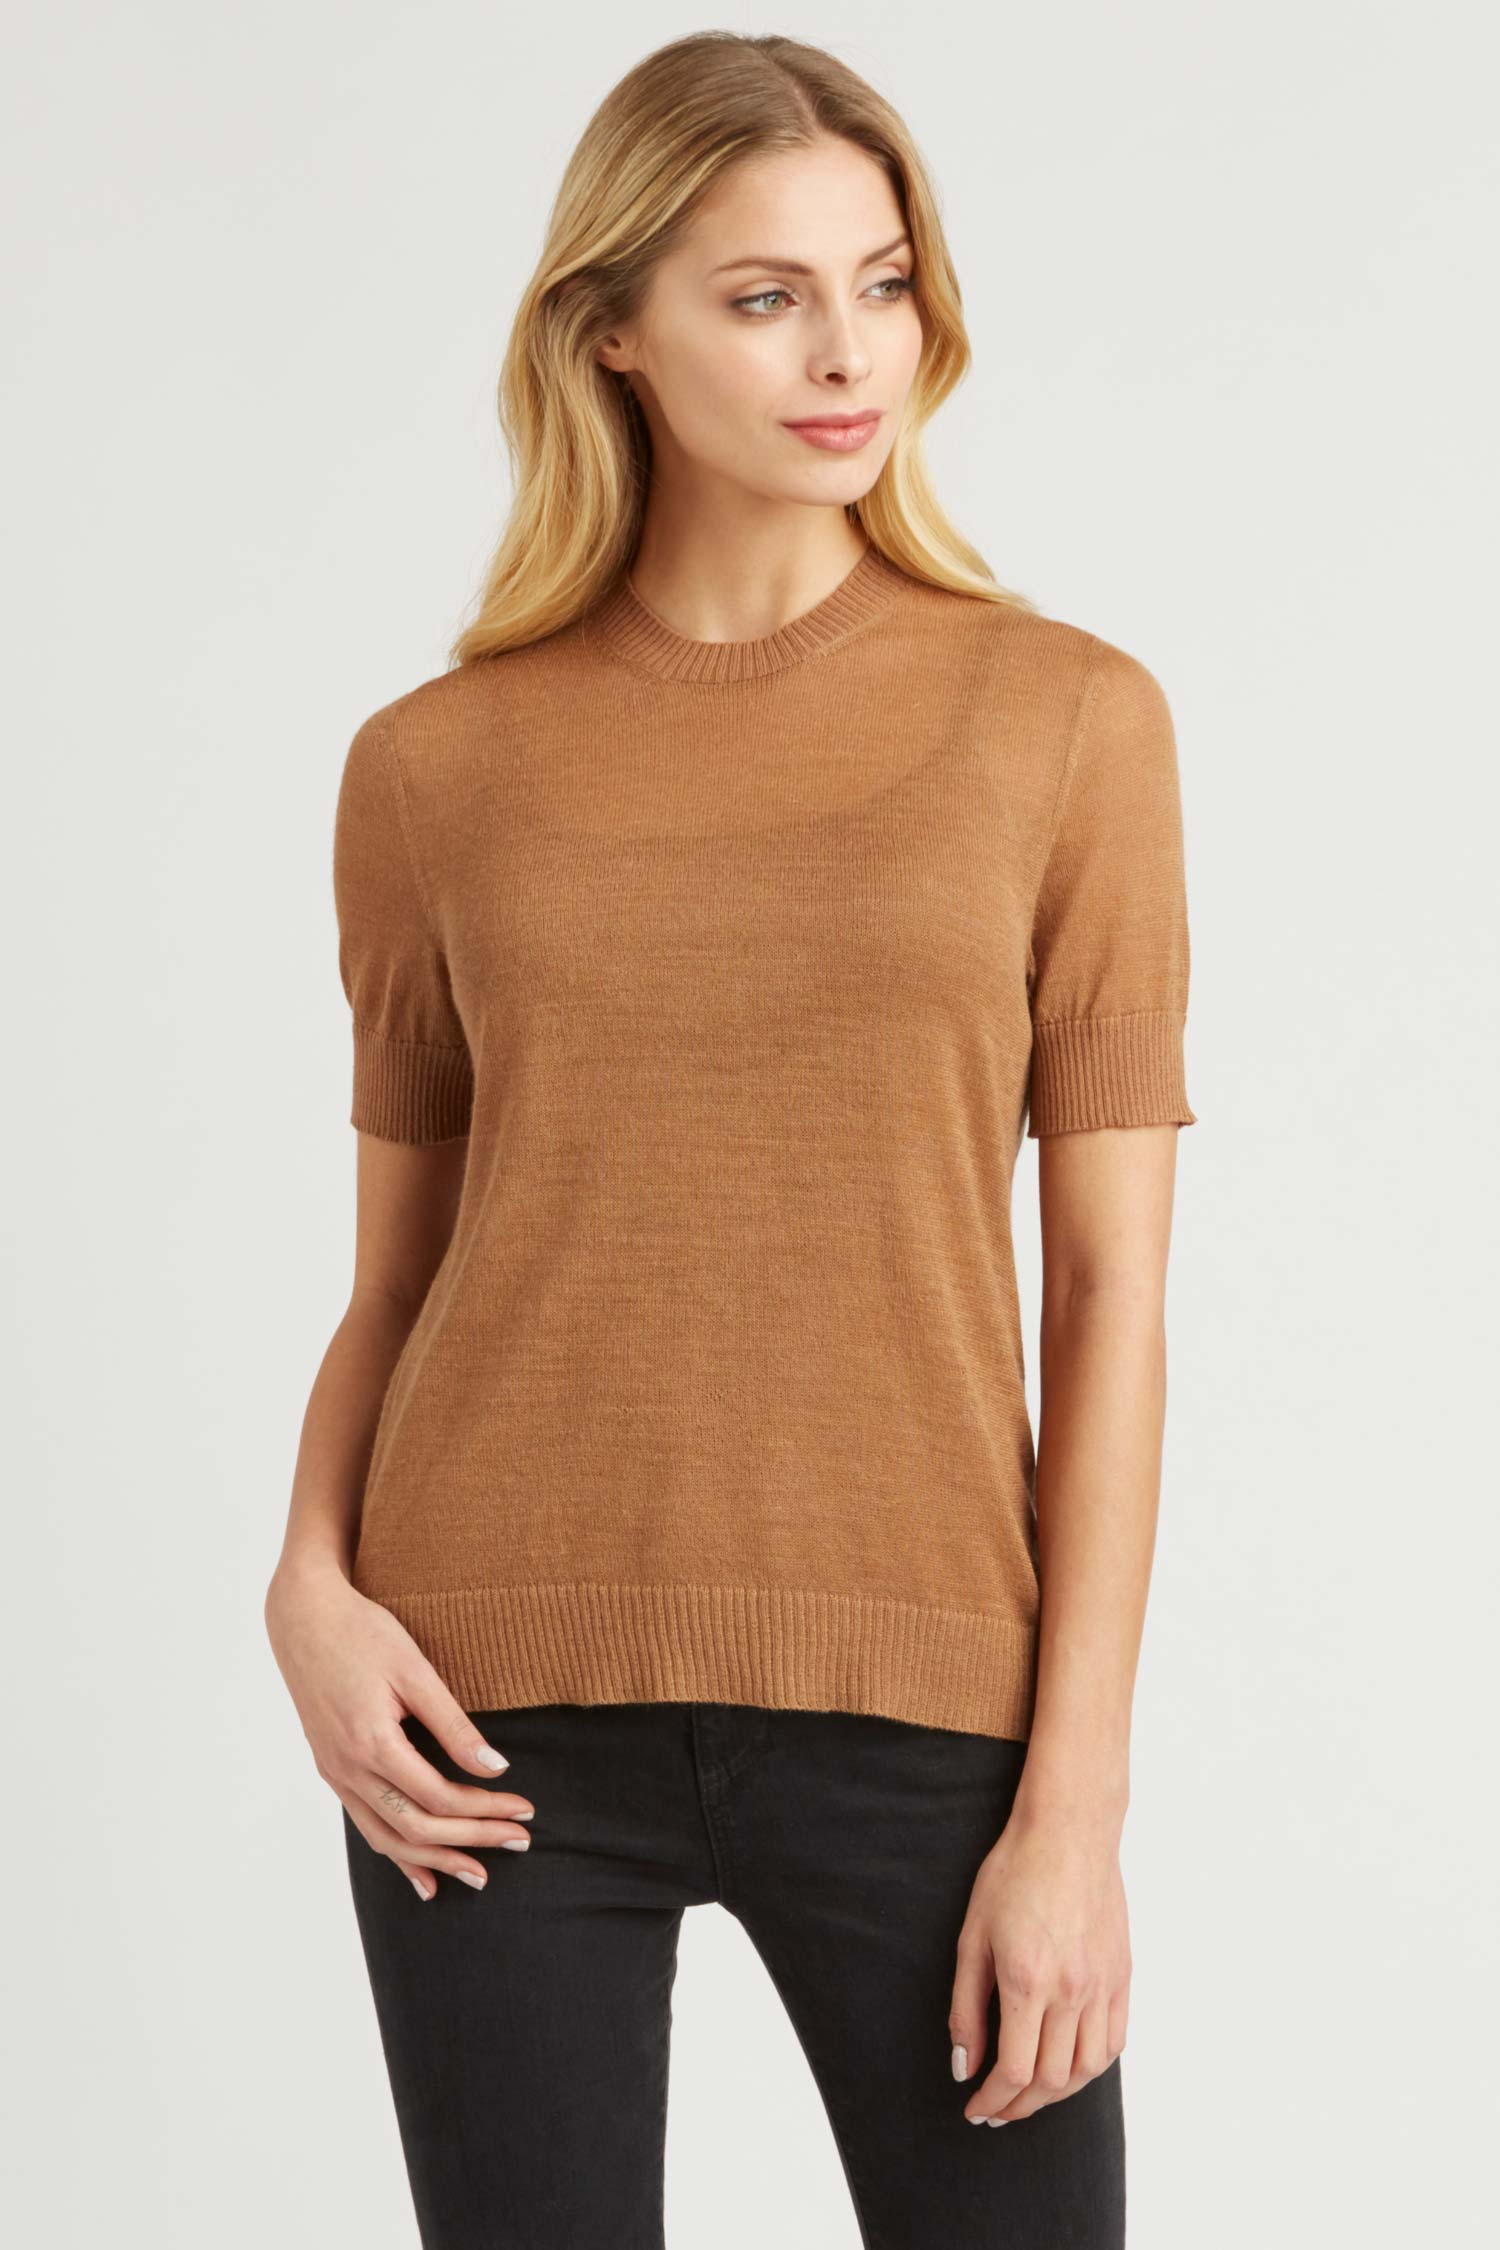 Womens Top | Sheer Alpaca Silk Tee | Camel Brown